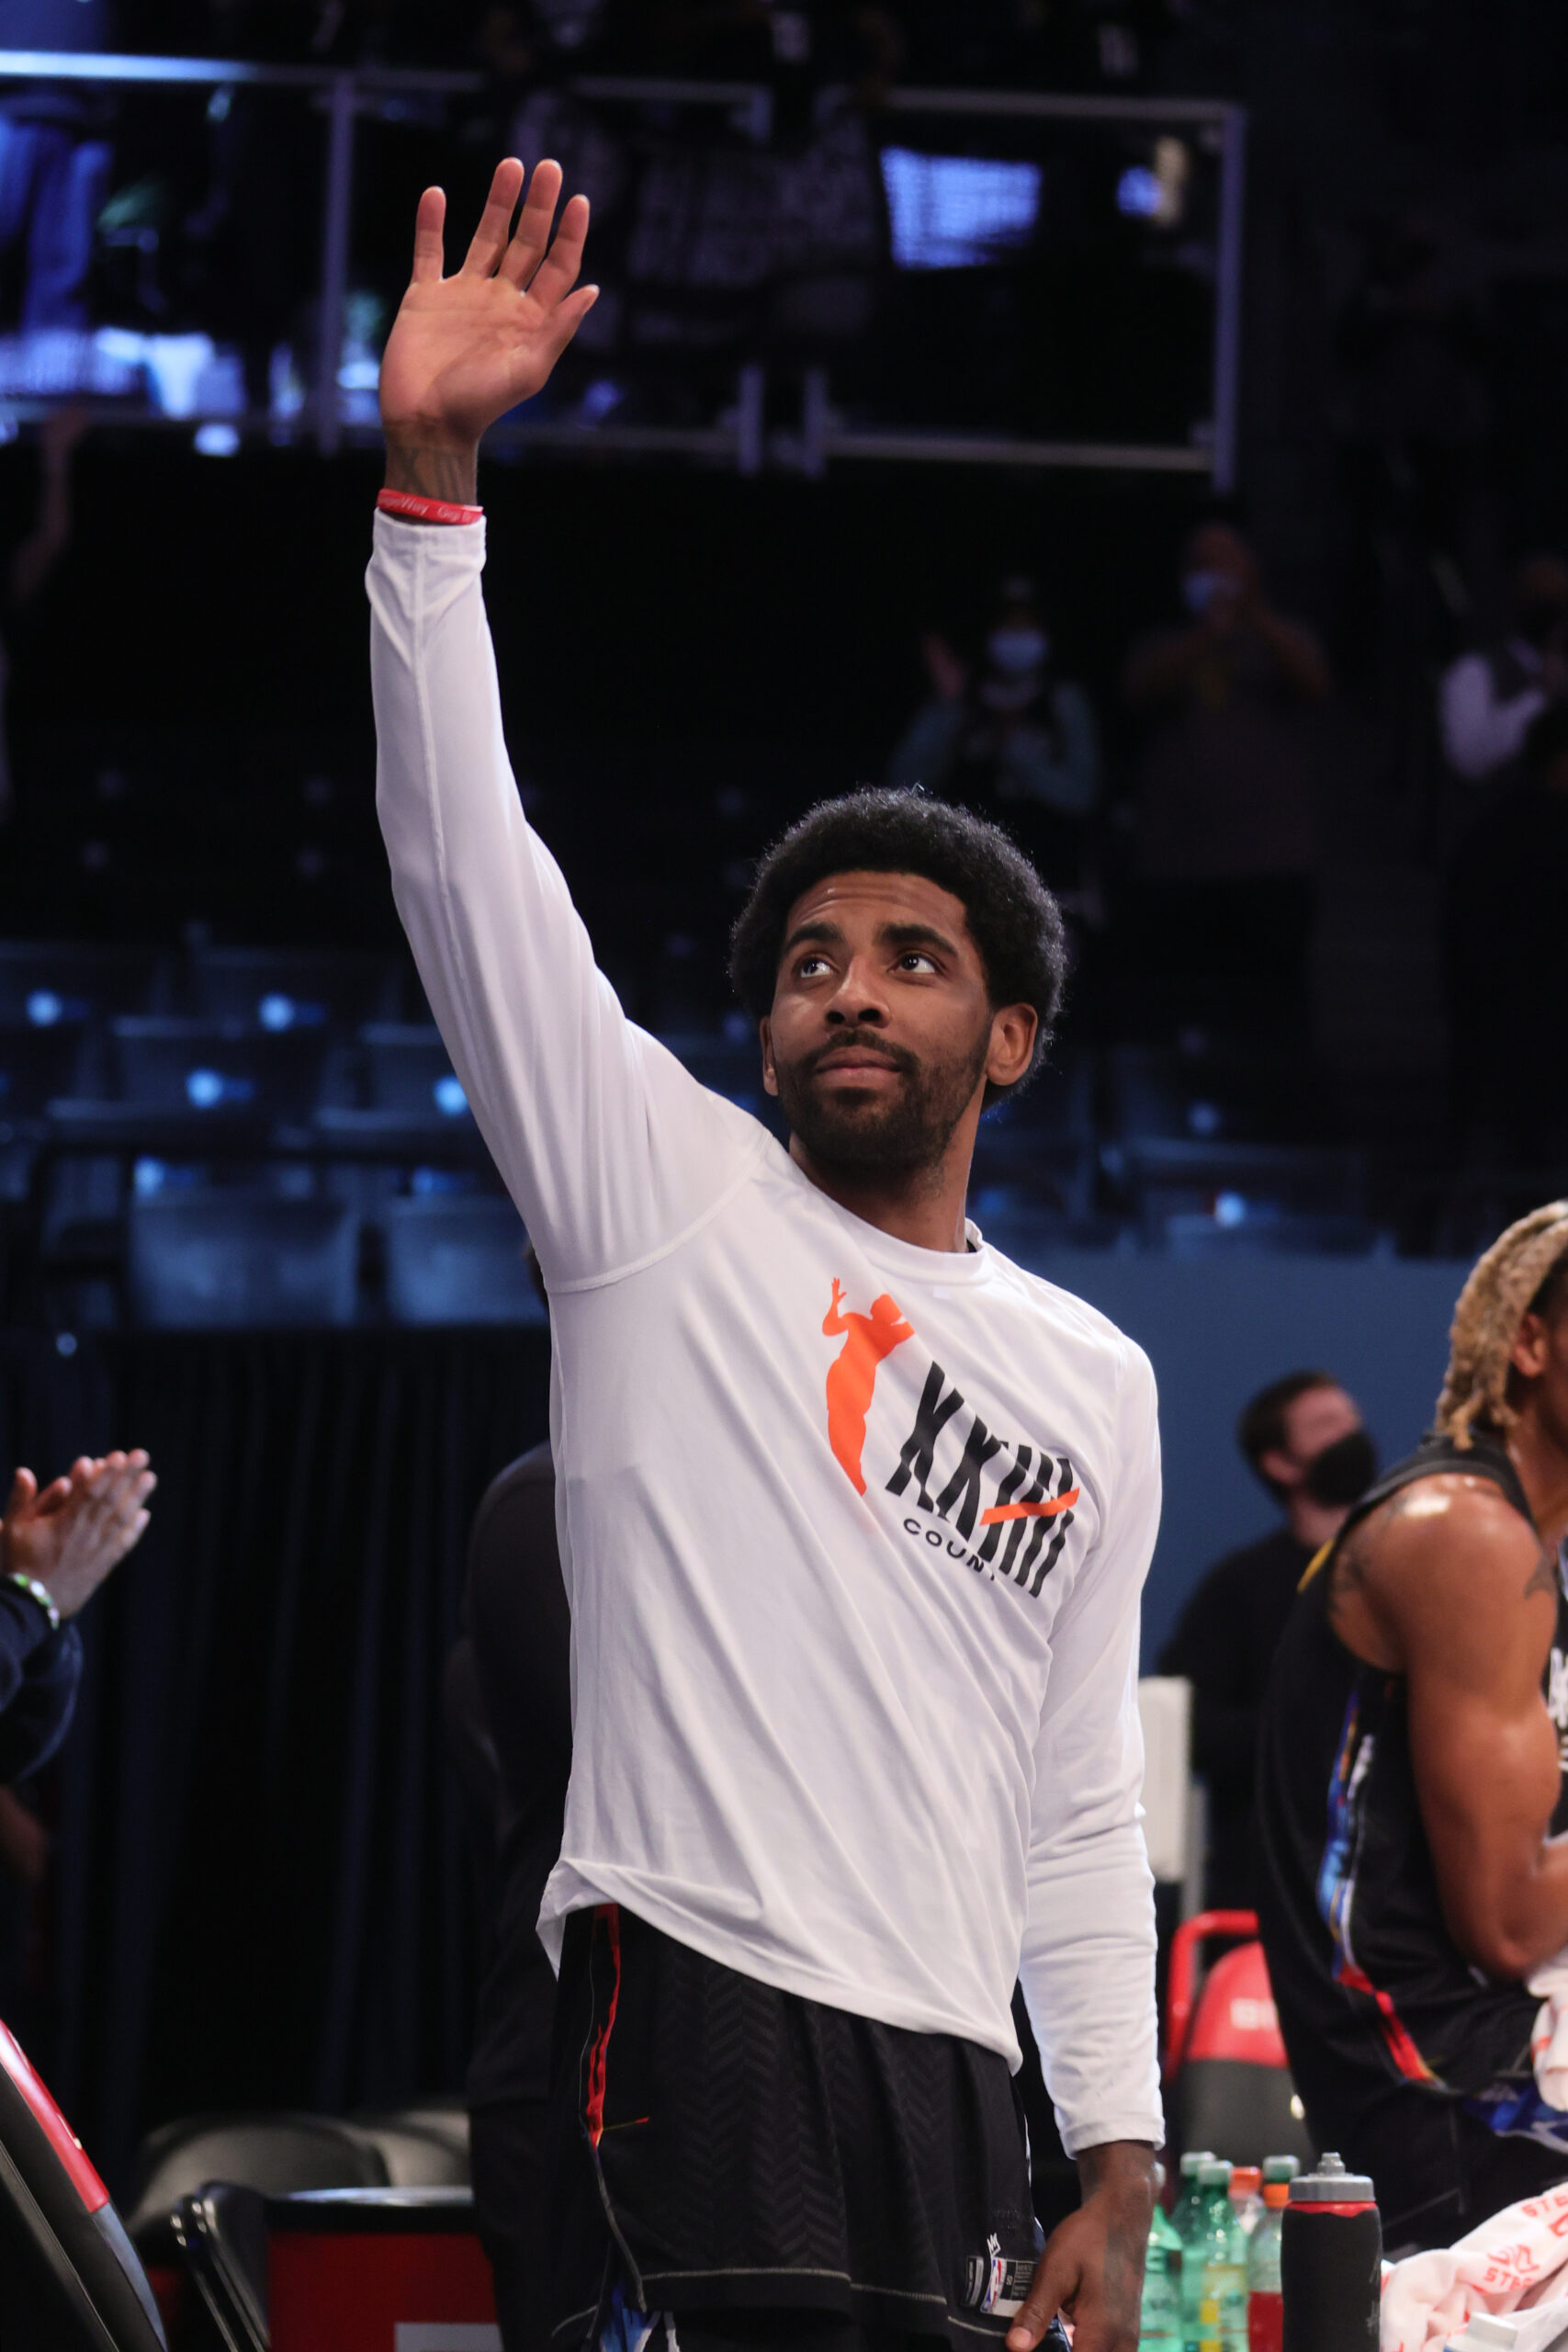 Kyrie Irving becomes 9th NBA player to achieve rare '50-40-90' shooting standard